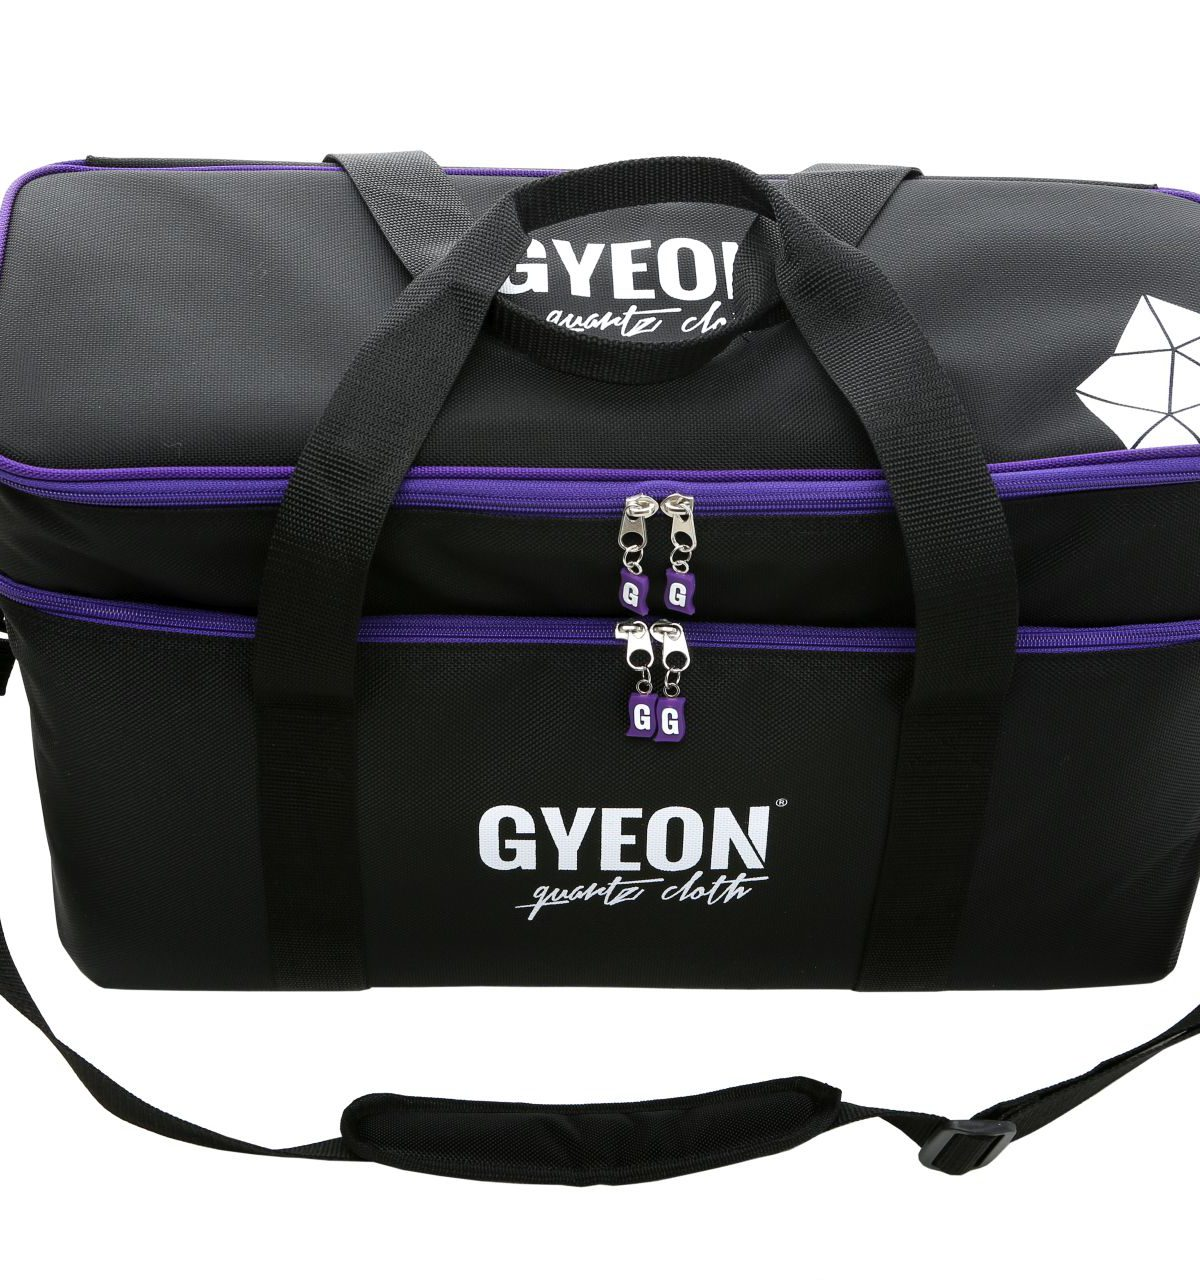 The Bag Is Made Of A Quality Synthetic Material Resistant Easy To Clean And Protecting Products Inside Well It S Equipped With An Optional Strap